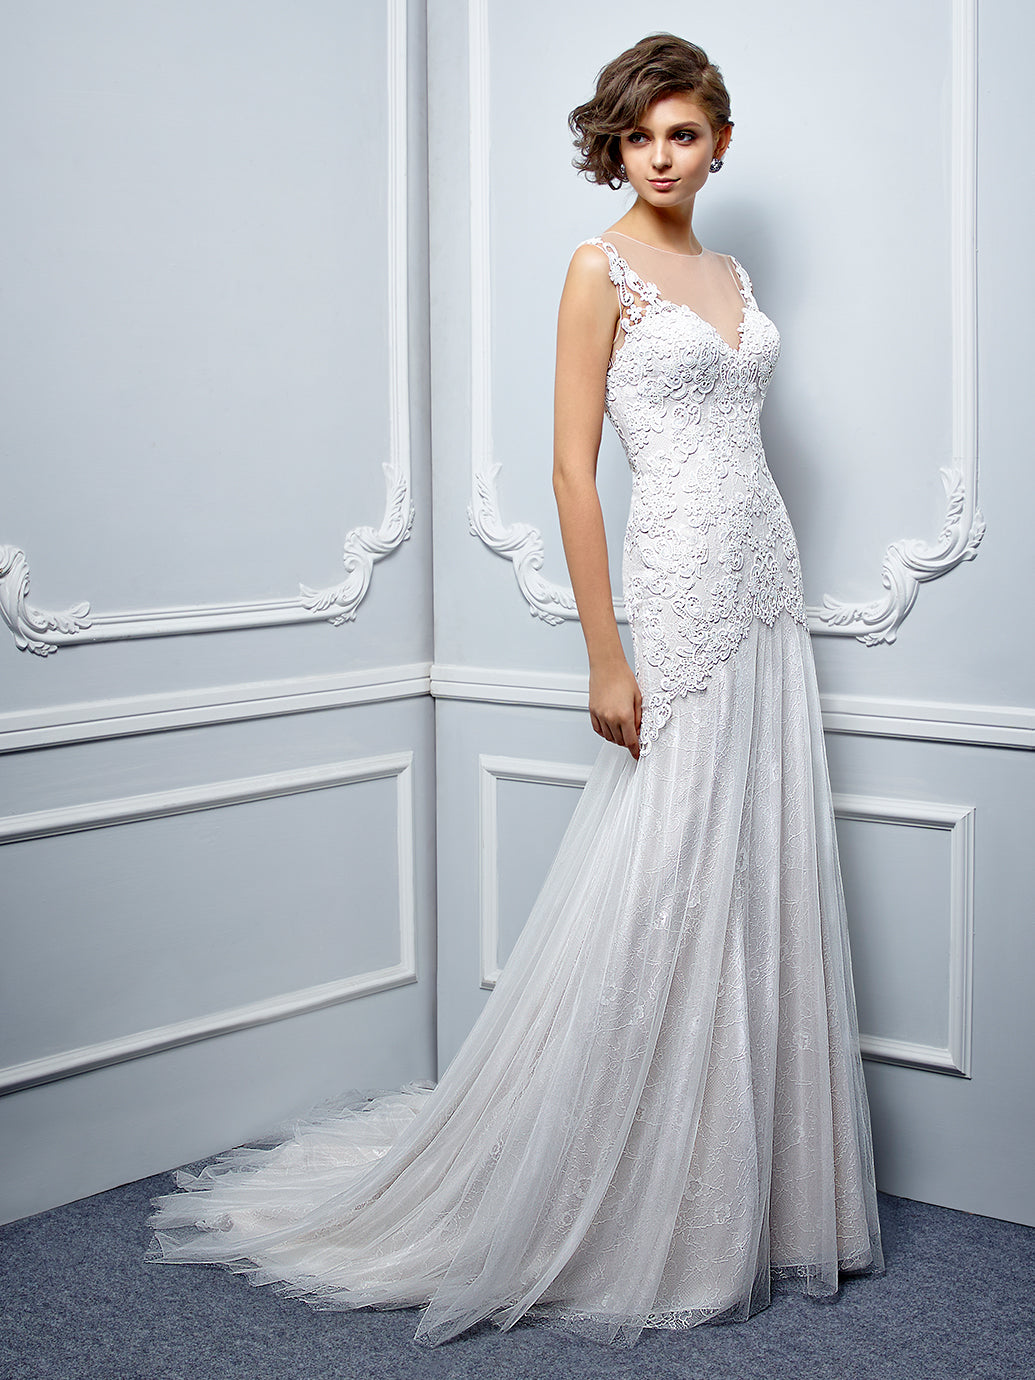 Nora - Sample Gown, Online Sample Sale, Beautiful by Enzoani - Sample Gown - Eternal Bridal